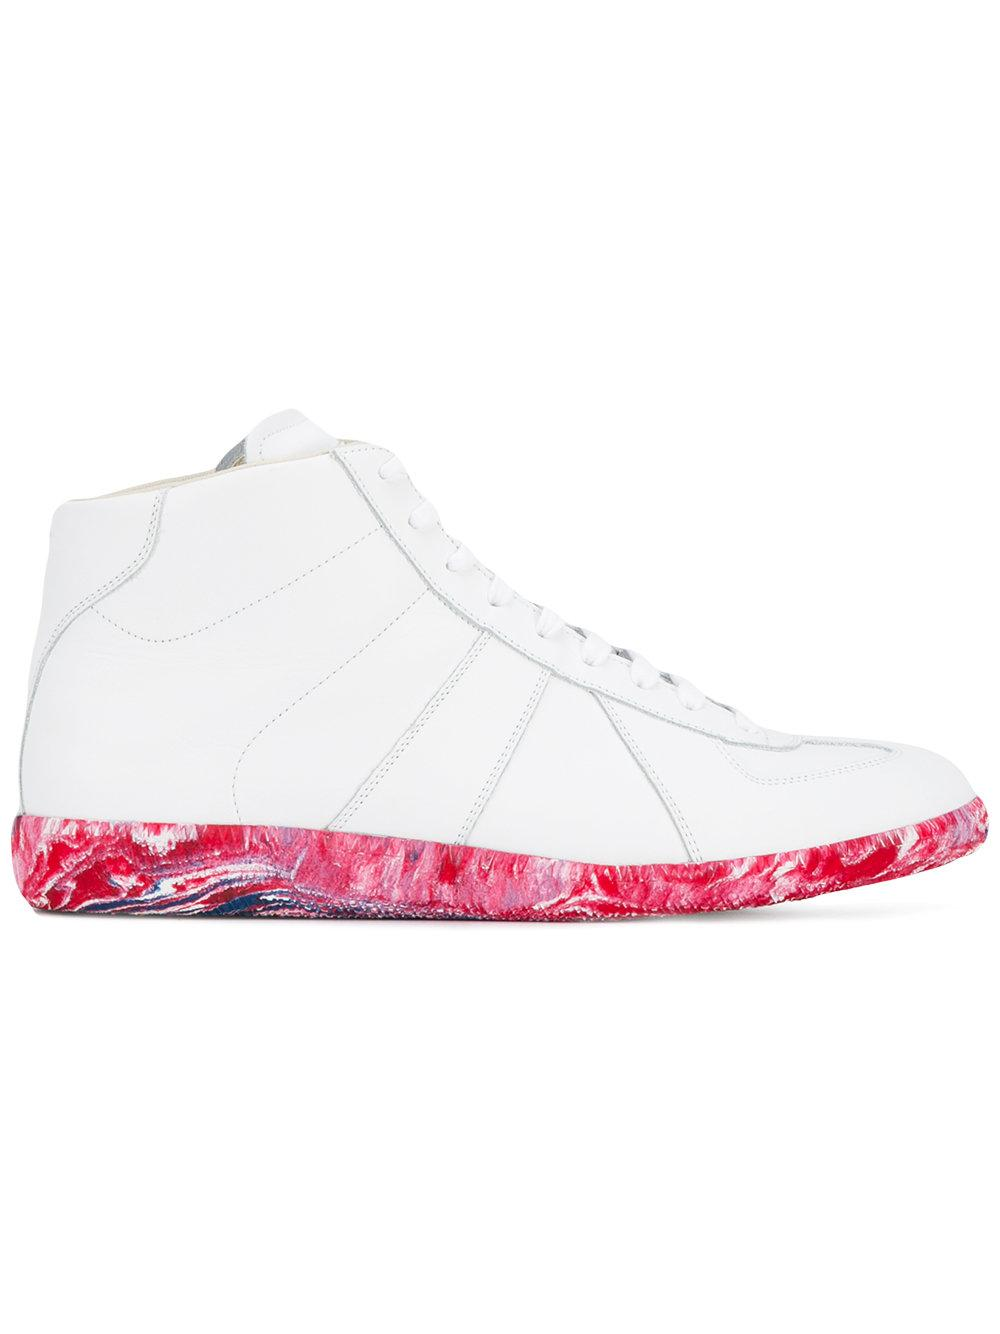 maison margiela high top sneakers in white for men lyst. Black Bedroom Furniture Sets. Home Design Ideas